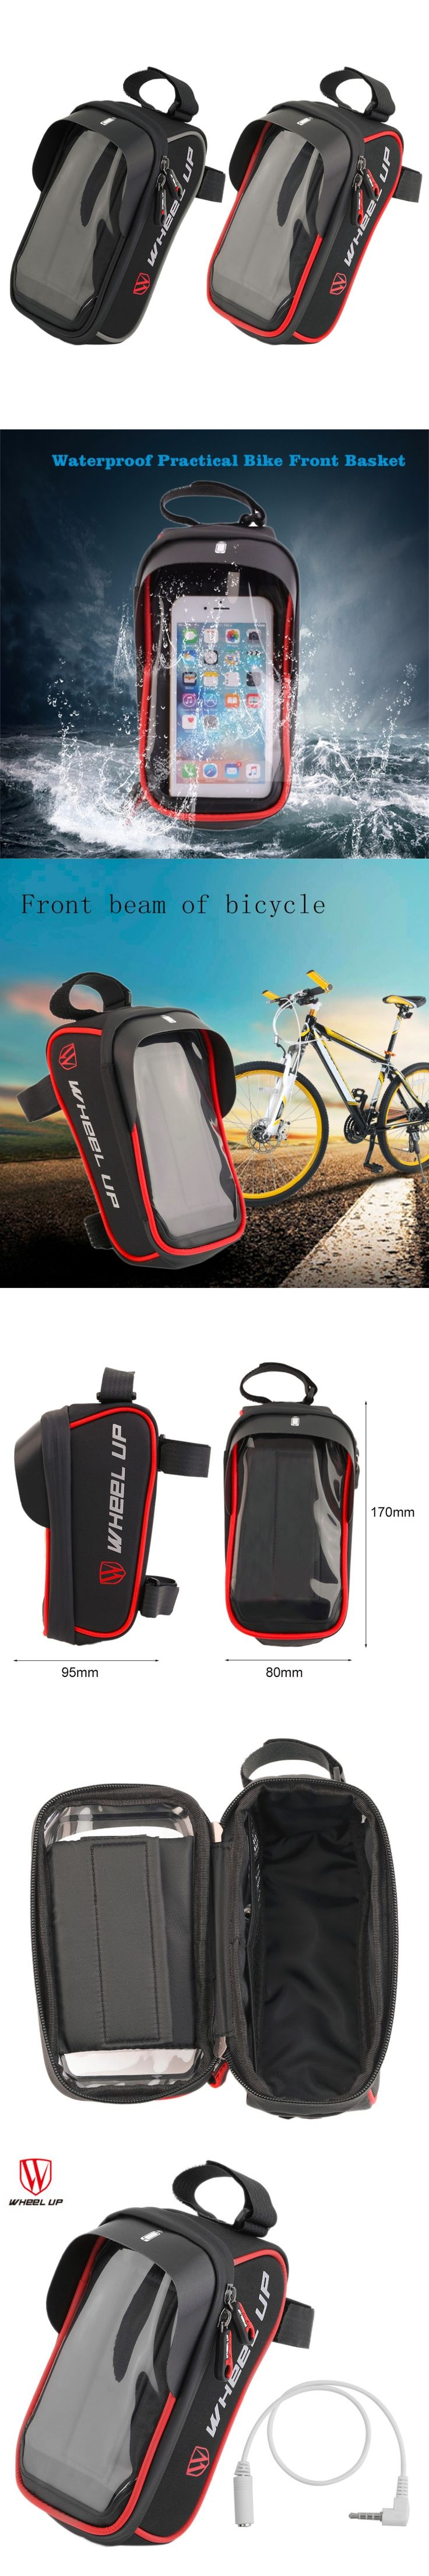 Wheel Up Waterproof Practical Bicycle Front Basket Pannier Frame Tube Handlebar Bag Pouch For Bike Riding Cycling Accessories